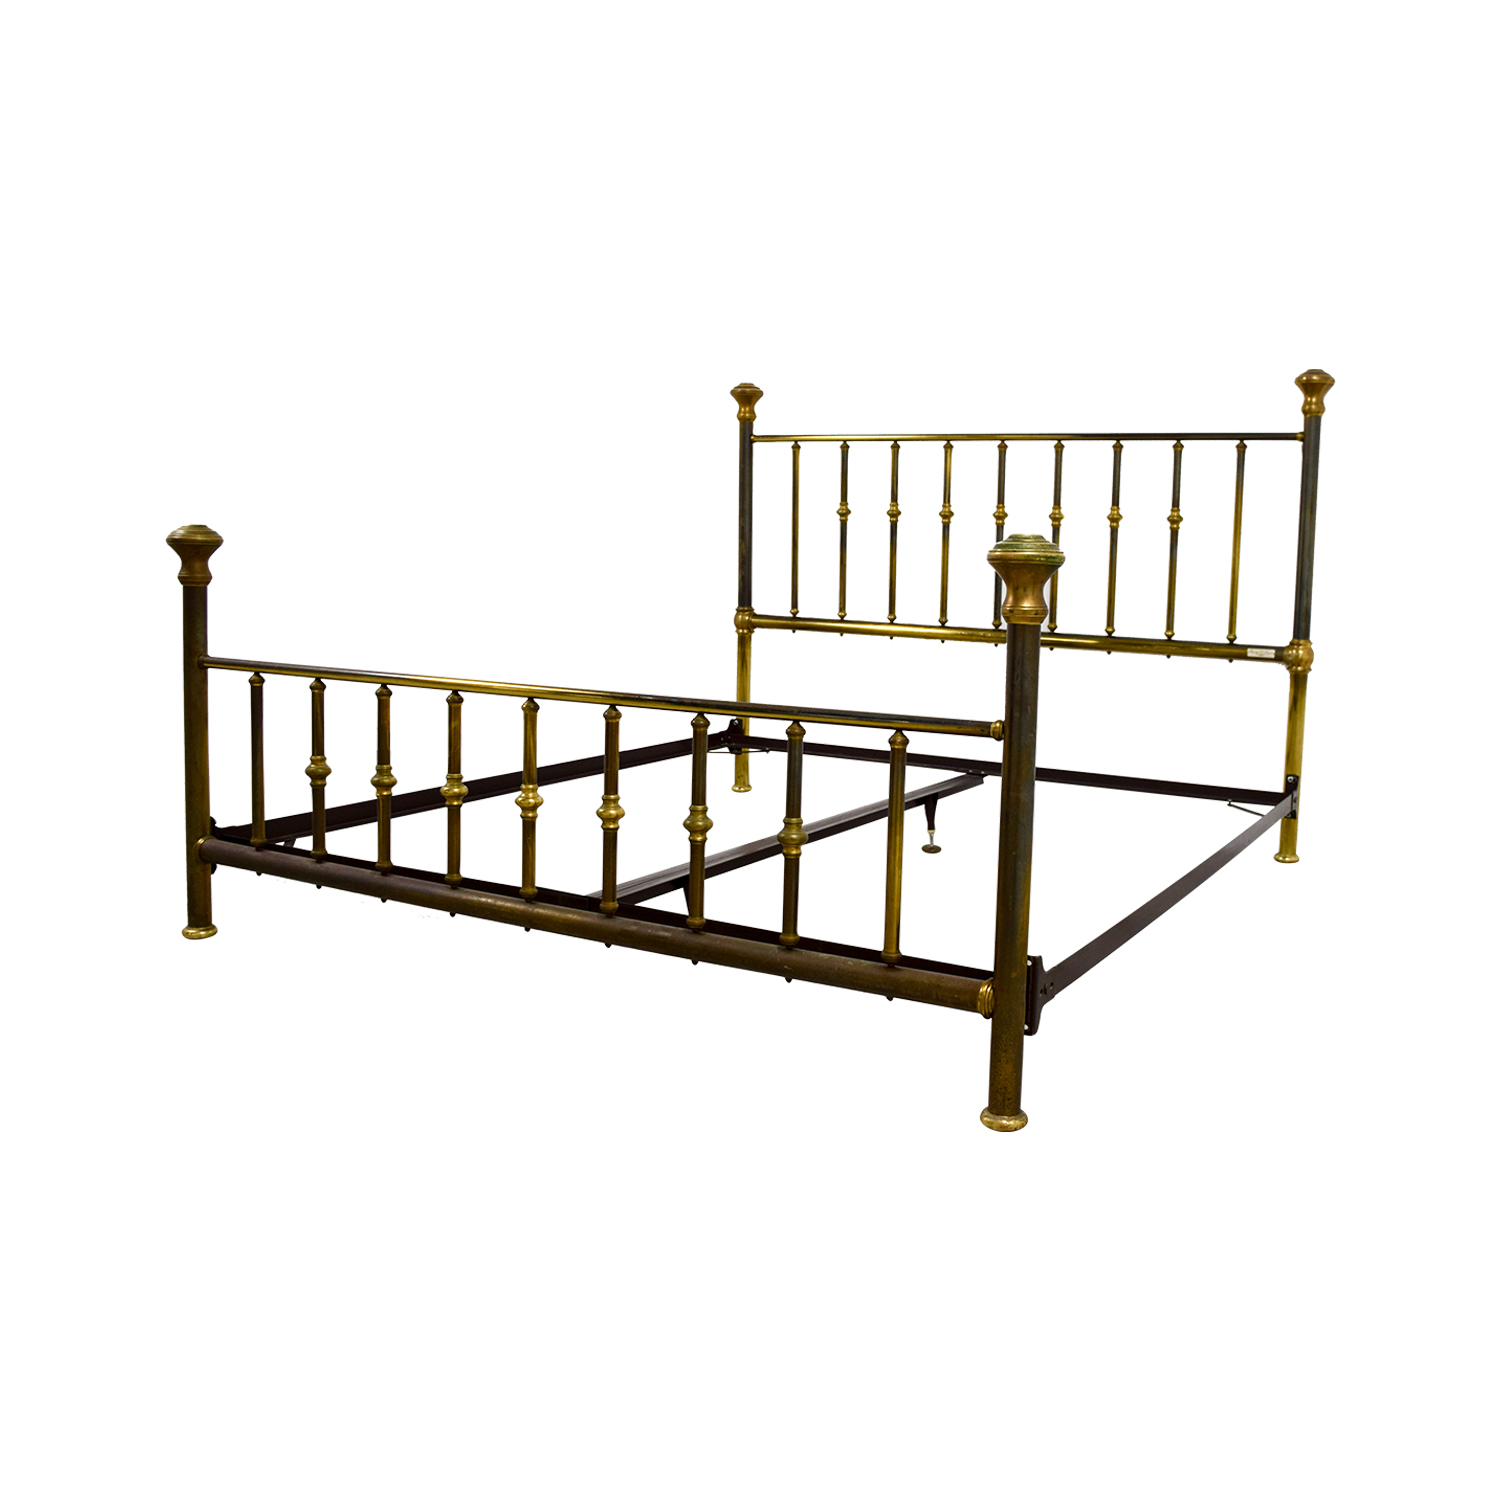 Charles P. Rodgers Charles P. Rodgers Putnam King Brass Bed Frame Beds